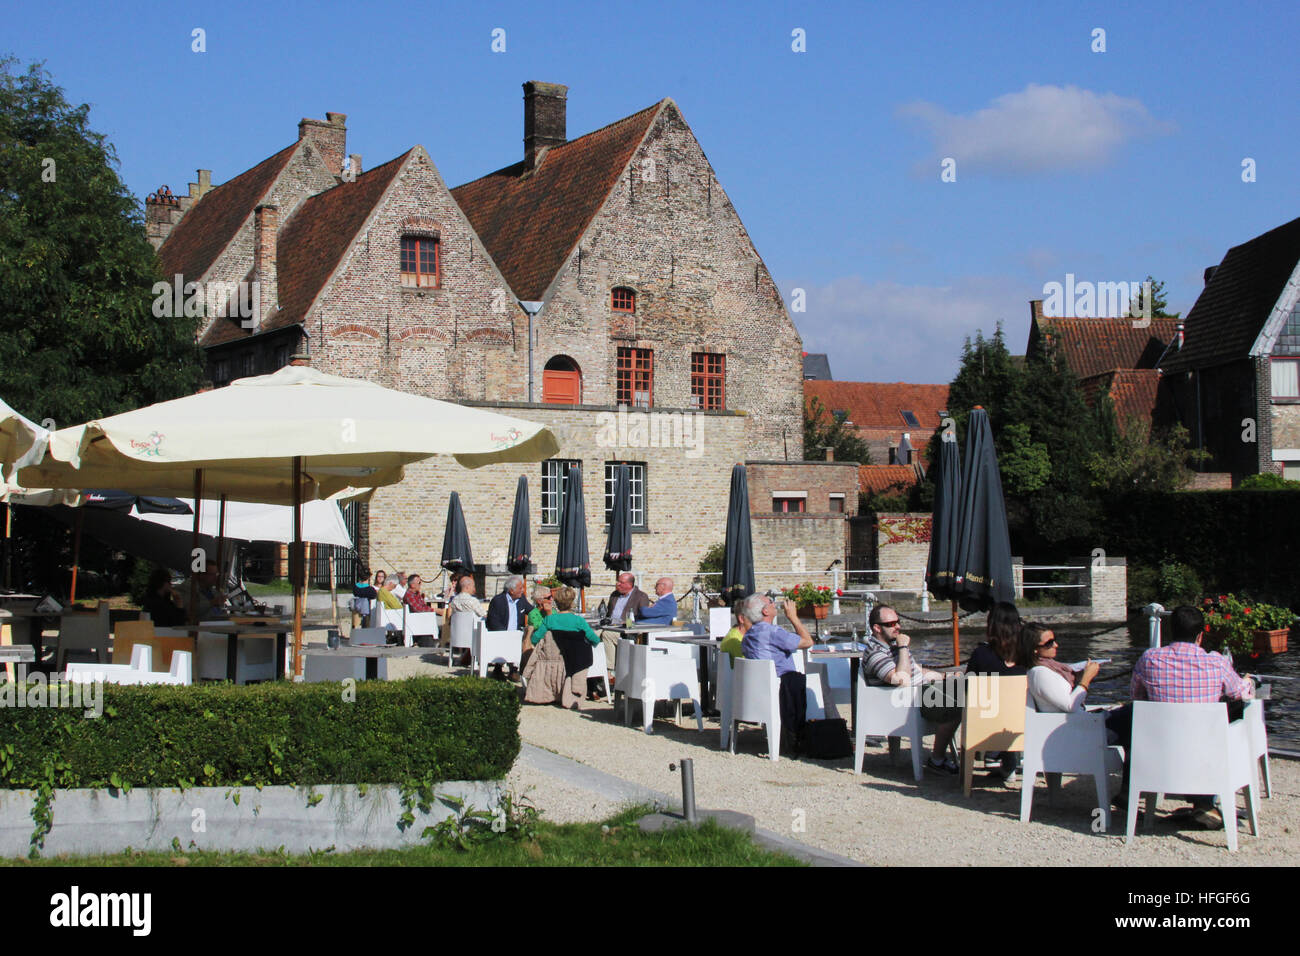 A canal-side cafe in Brugge Belgium Stock Photo